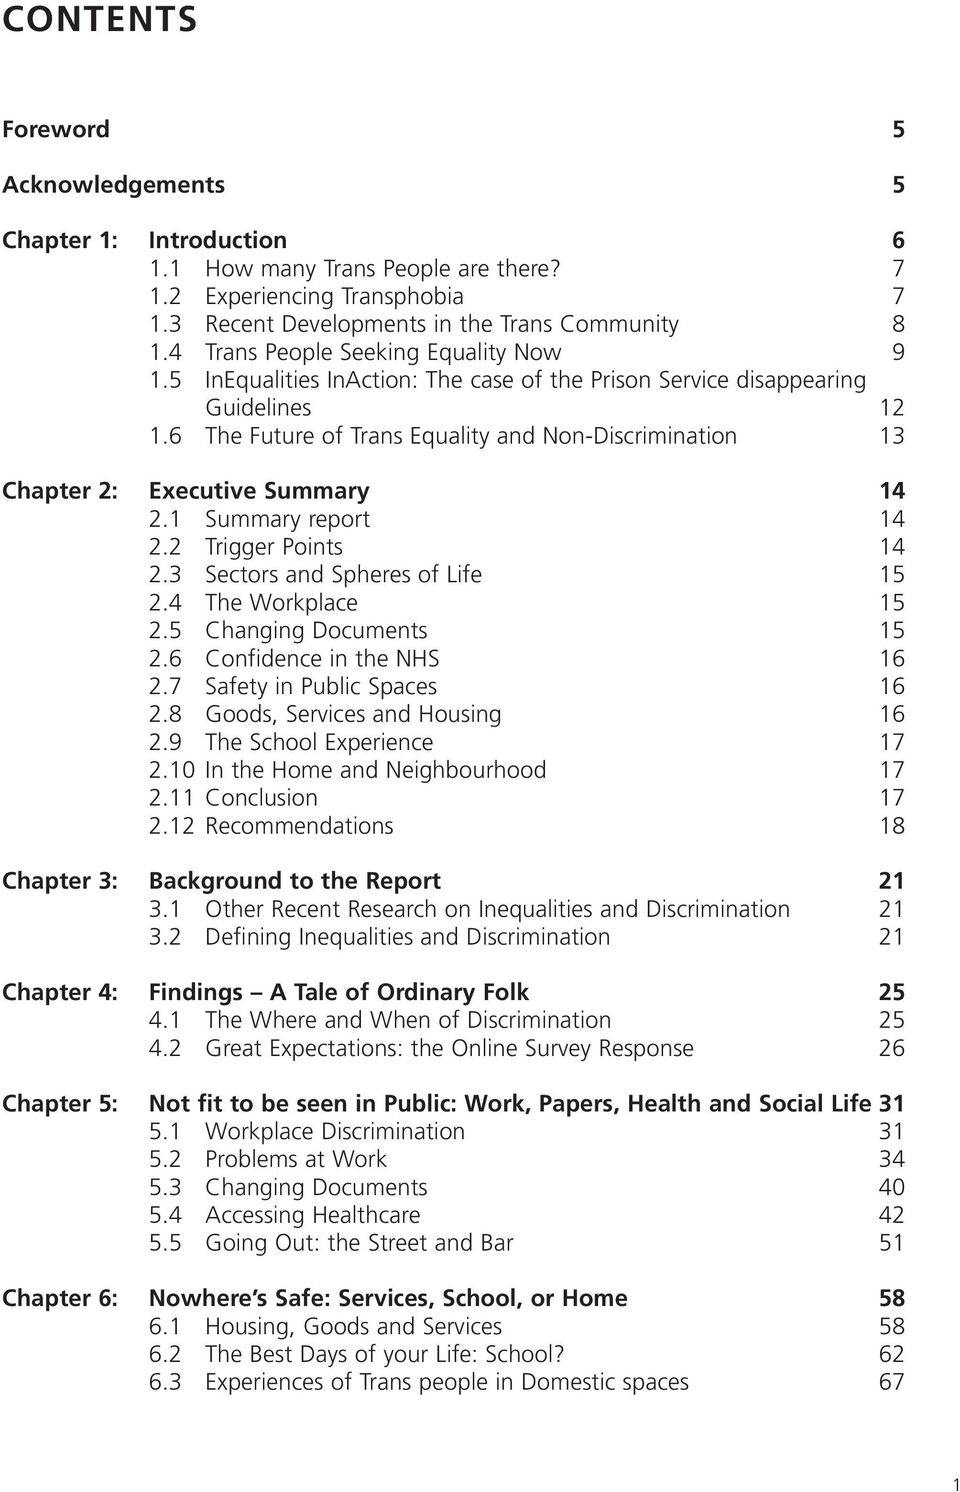 6 The Future of Trans Equality and Non-Discrimination 13 Chapter 2: Executive Summary 14 2.1 Summary report 14 2.2 Trigger Points 14 2.3 Sectors and Spheres of Life 15 2.4 The Workplace 15 2.